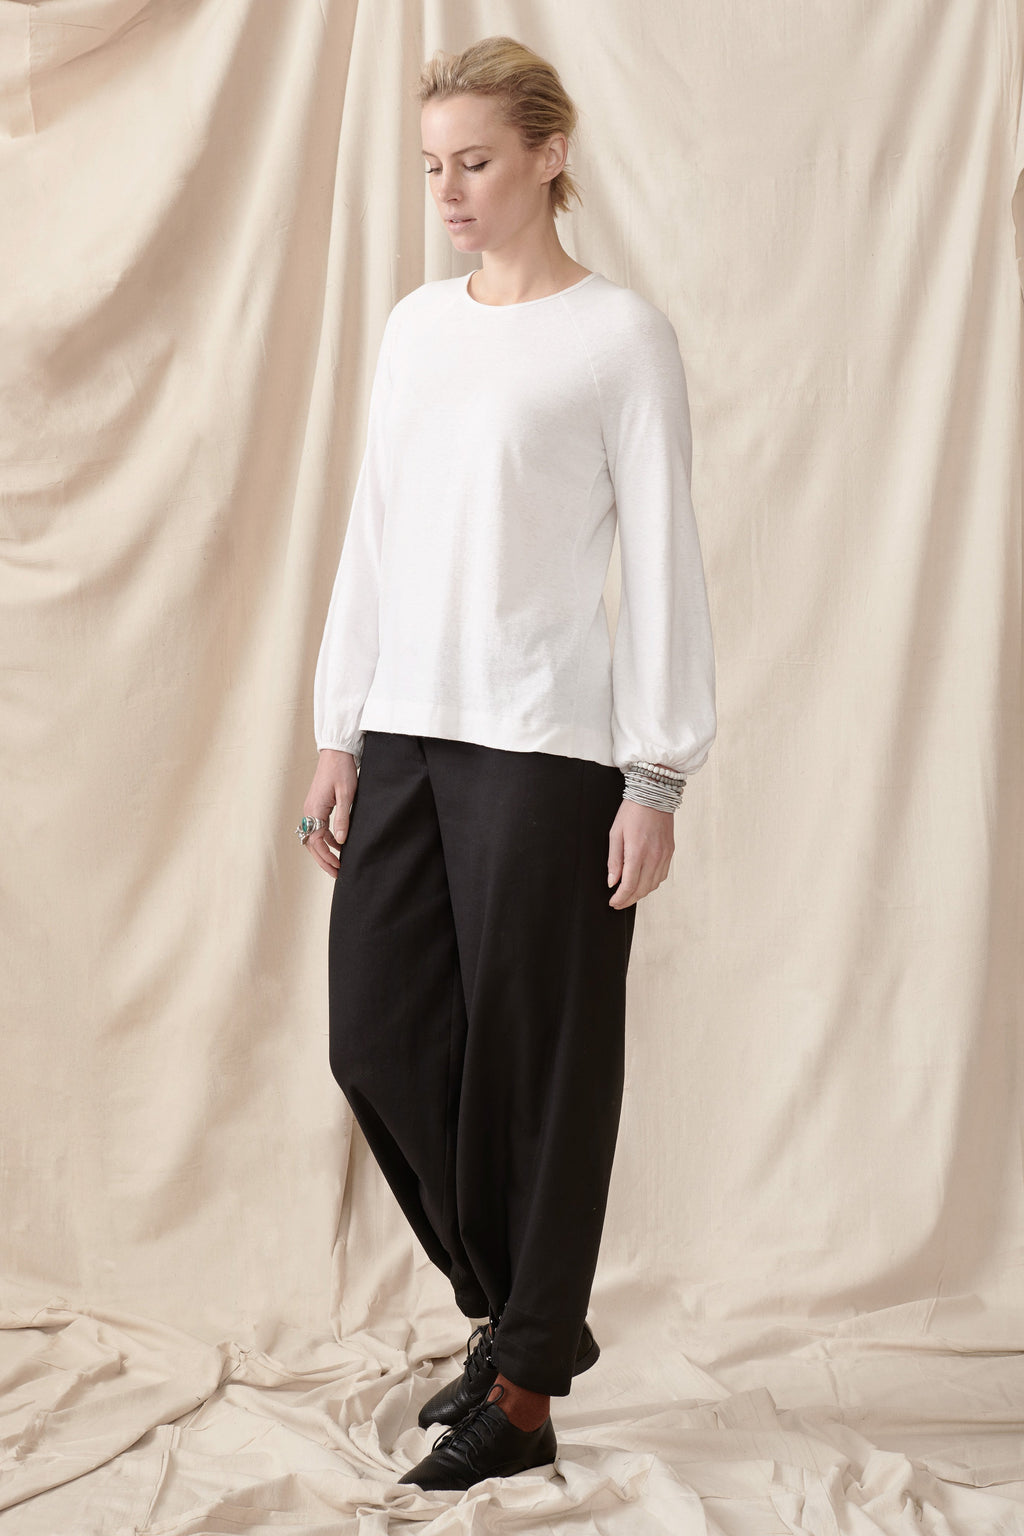 Ash Top in Hemp Organic Cotton Knit Shirts + tops Ethical Sustainable Vegan Organic Australian fashion womens clothes